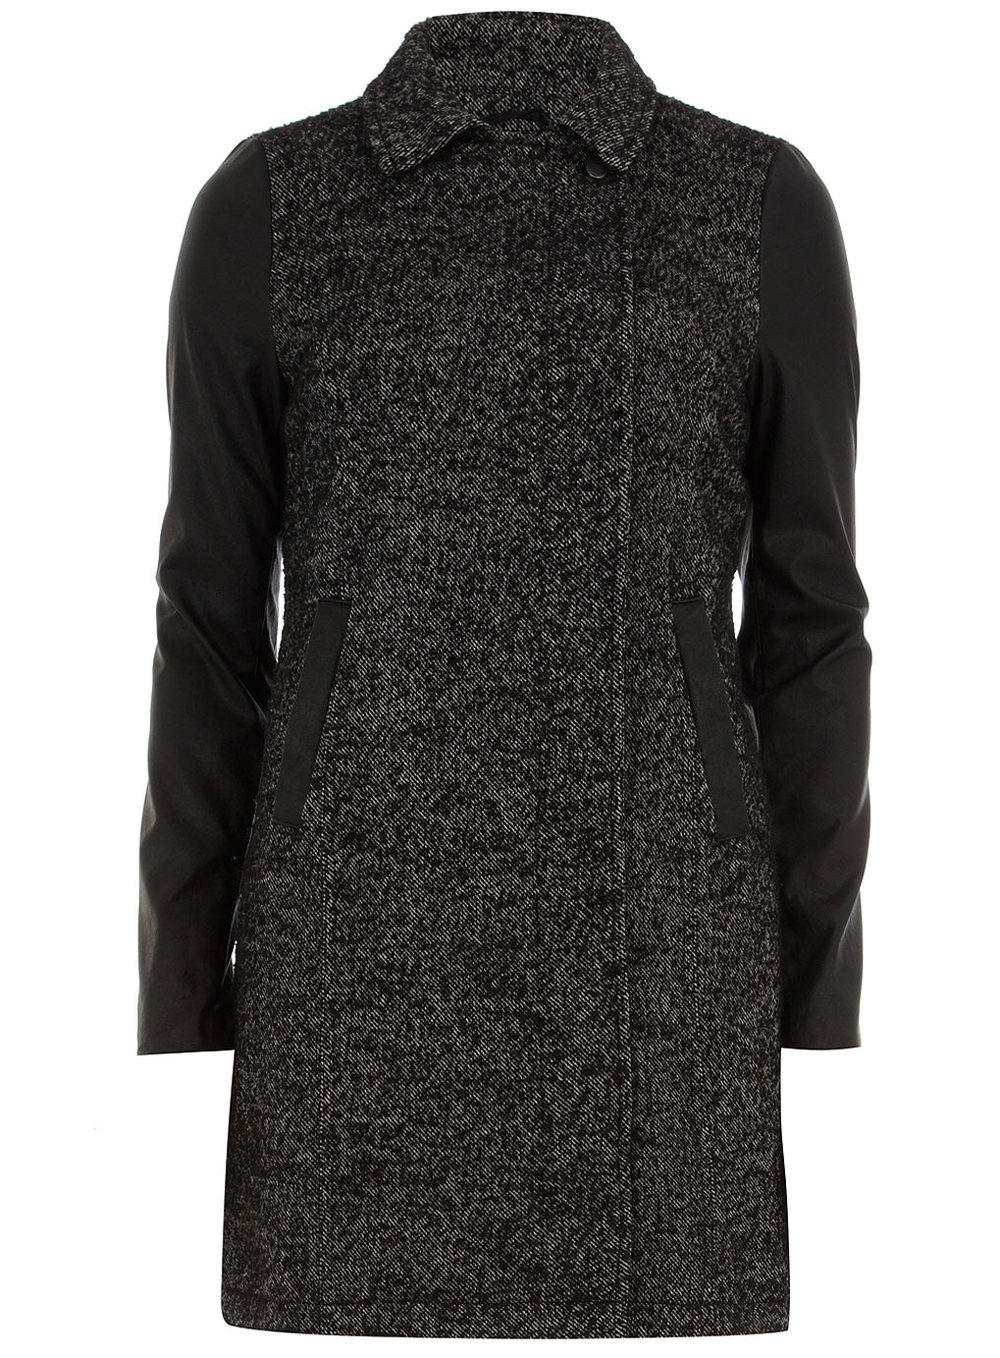 Long line PU sleeve Wool Coat Price: $119.00 Dorothyperkins.com